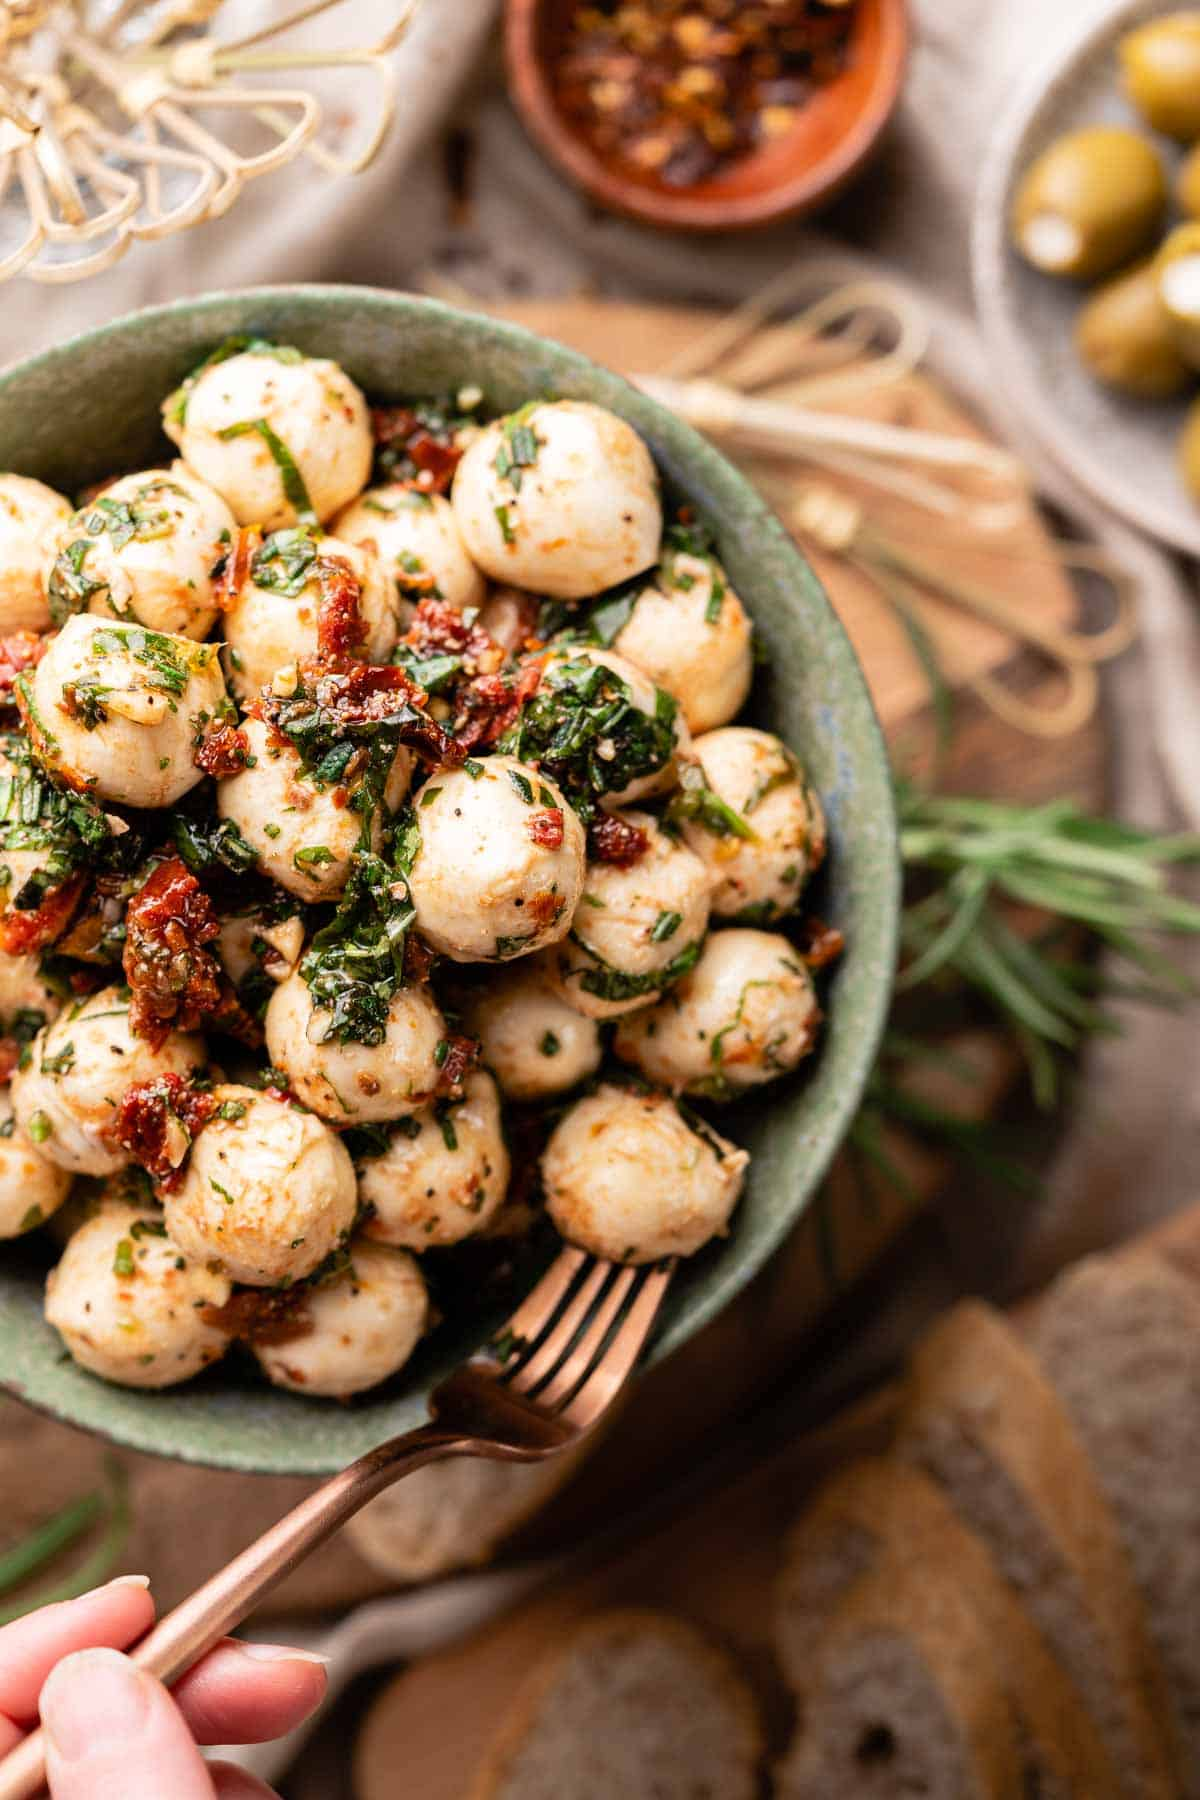 marinated mozzarella balls in green bowl with fork serving one piece